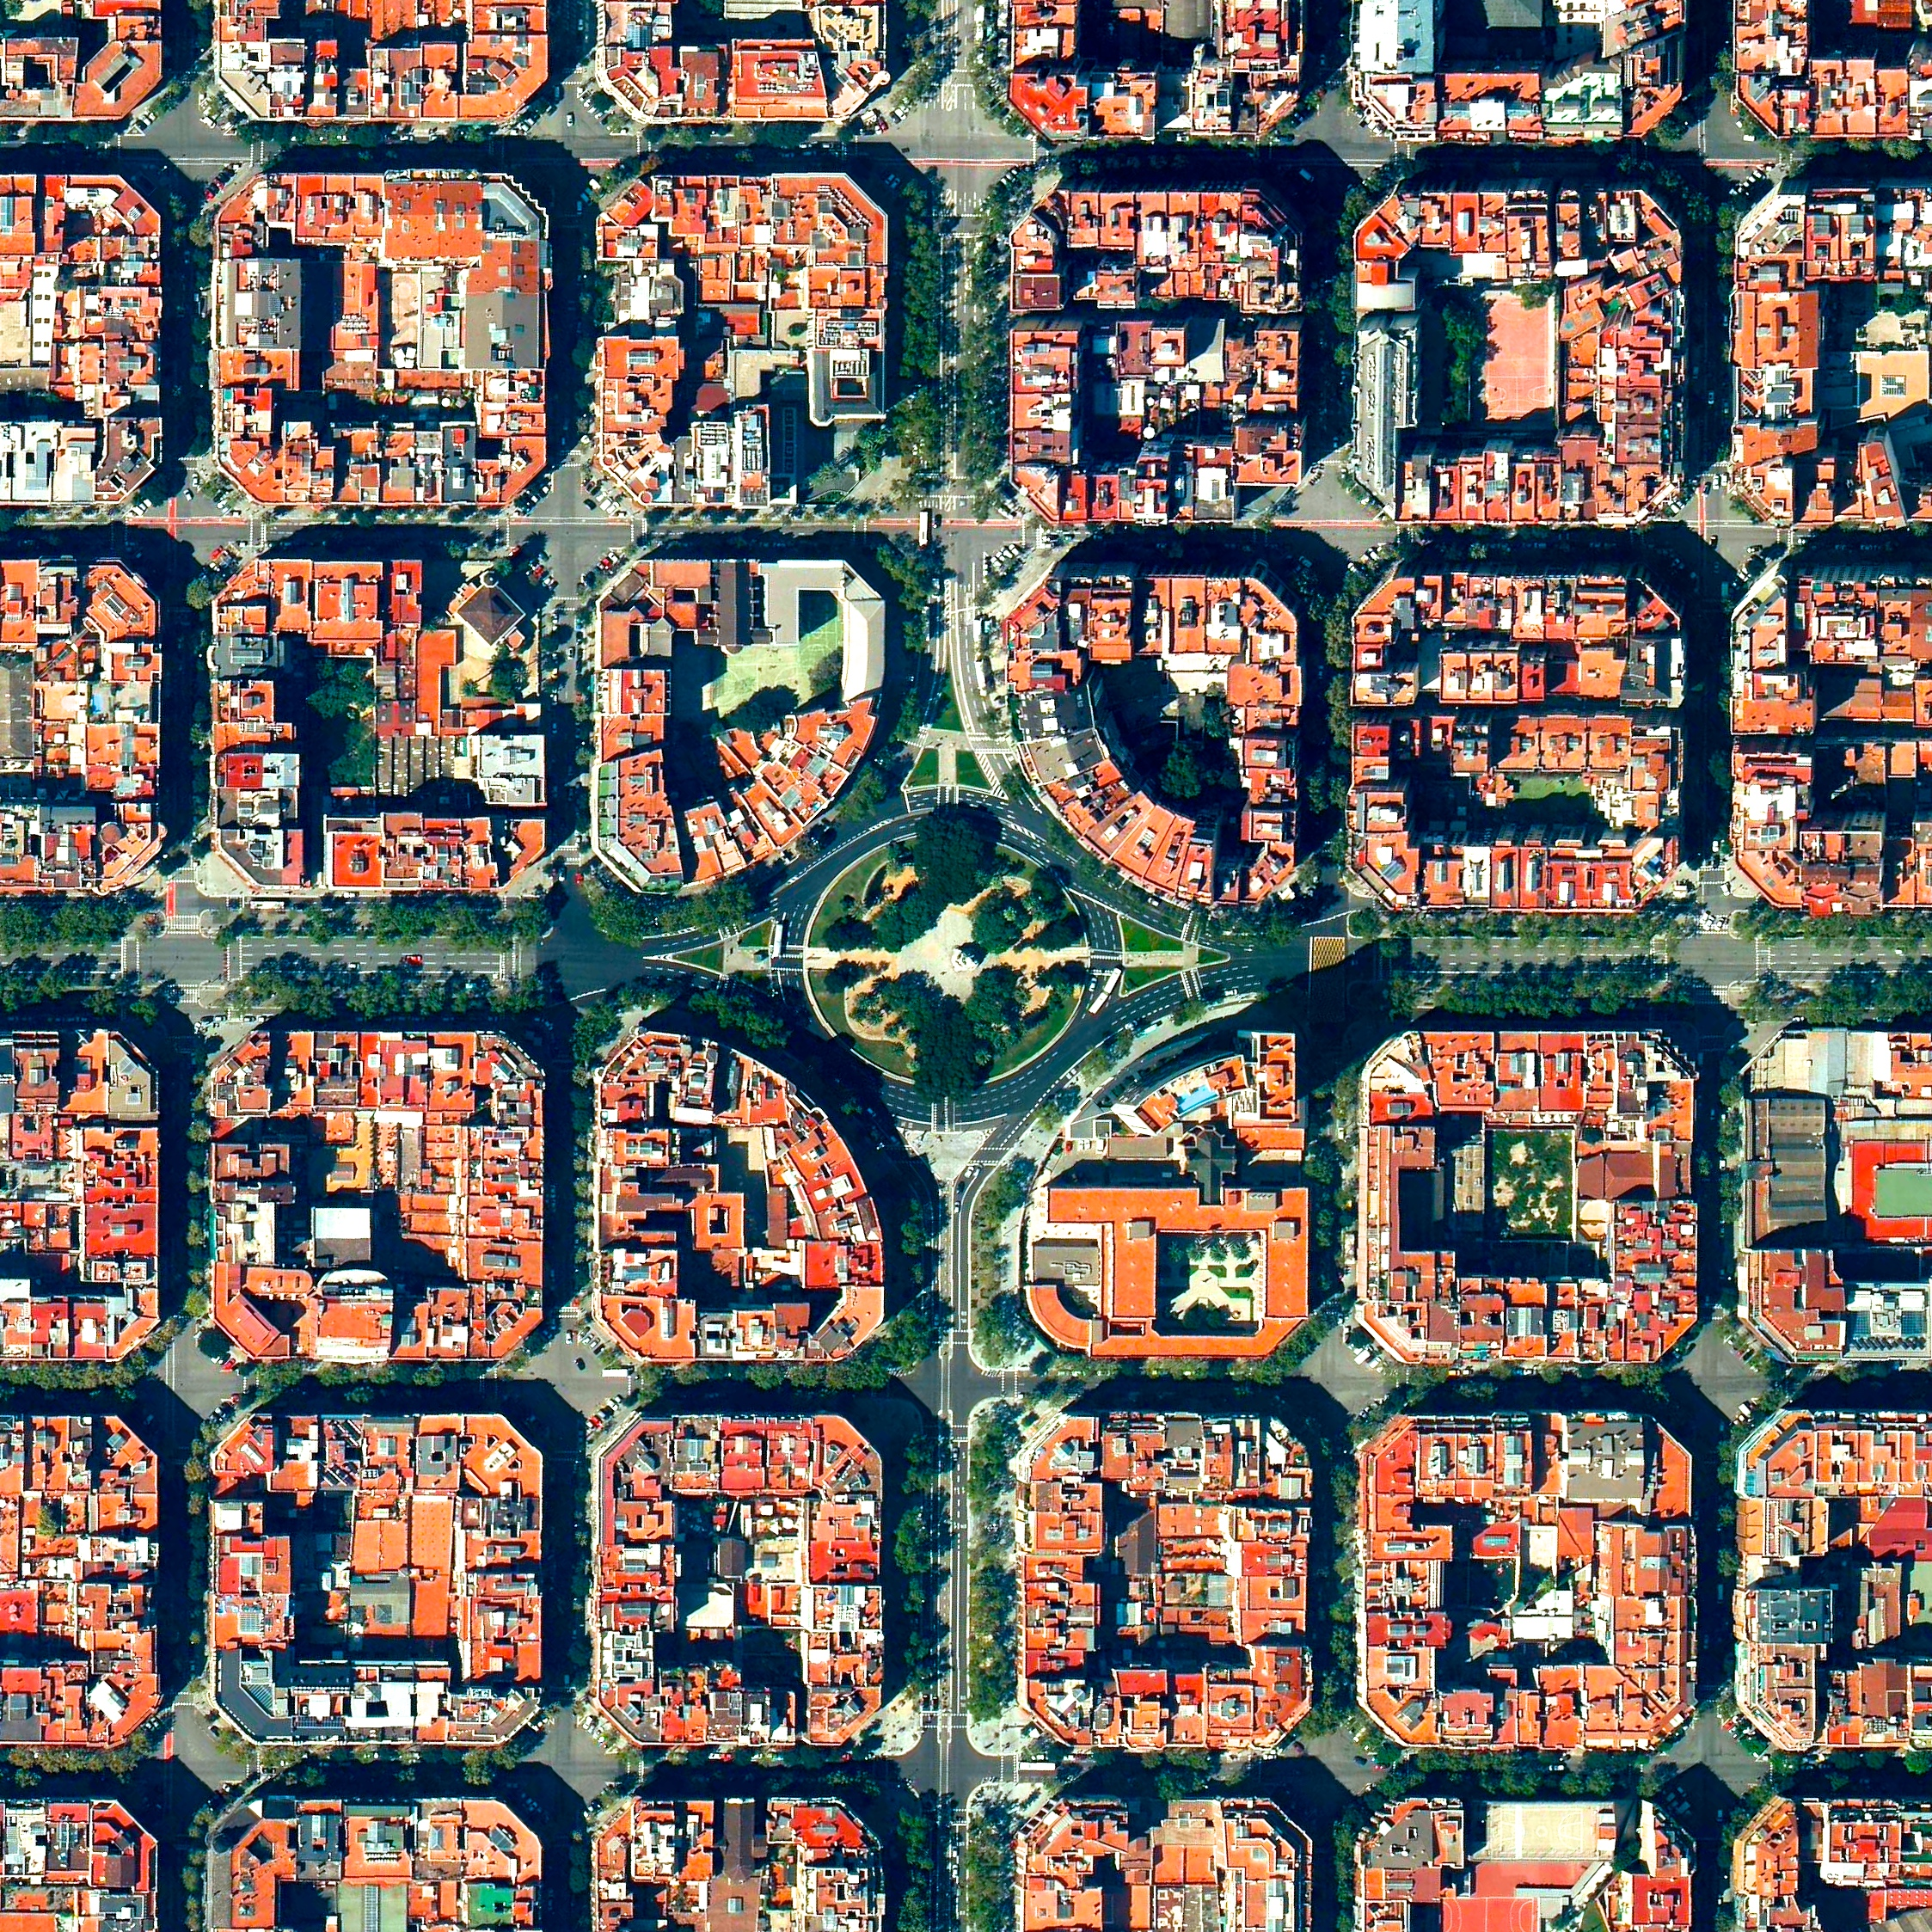 4/25/2017  Plaça de Tetuan  Barcelona, Spain  41.394921°N 2.175507°E  Plaça de Tetuan is a major square located in the Eixample district of Barcelona, Spain. The area characterized by its strict grid pattern, octagonal intersections, and apartments with communal courtyards. This Overview also available for purchase in our Printshop  Source imagery: DigitalGlobe